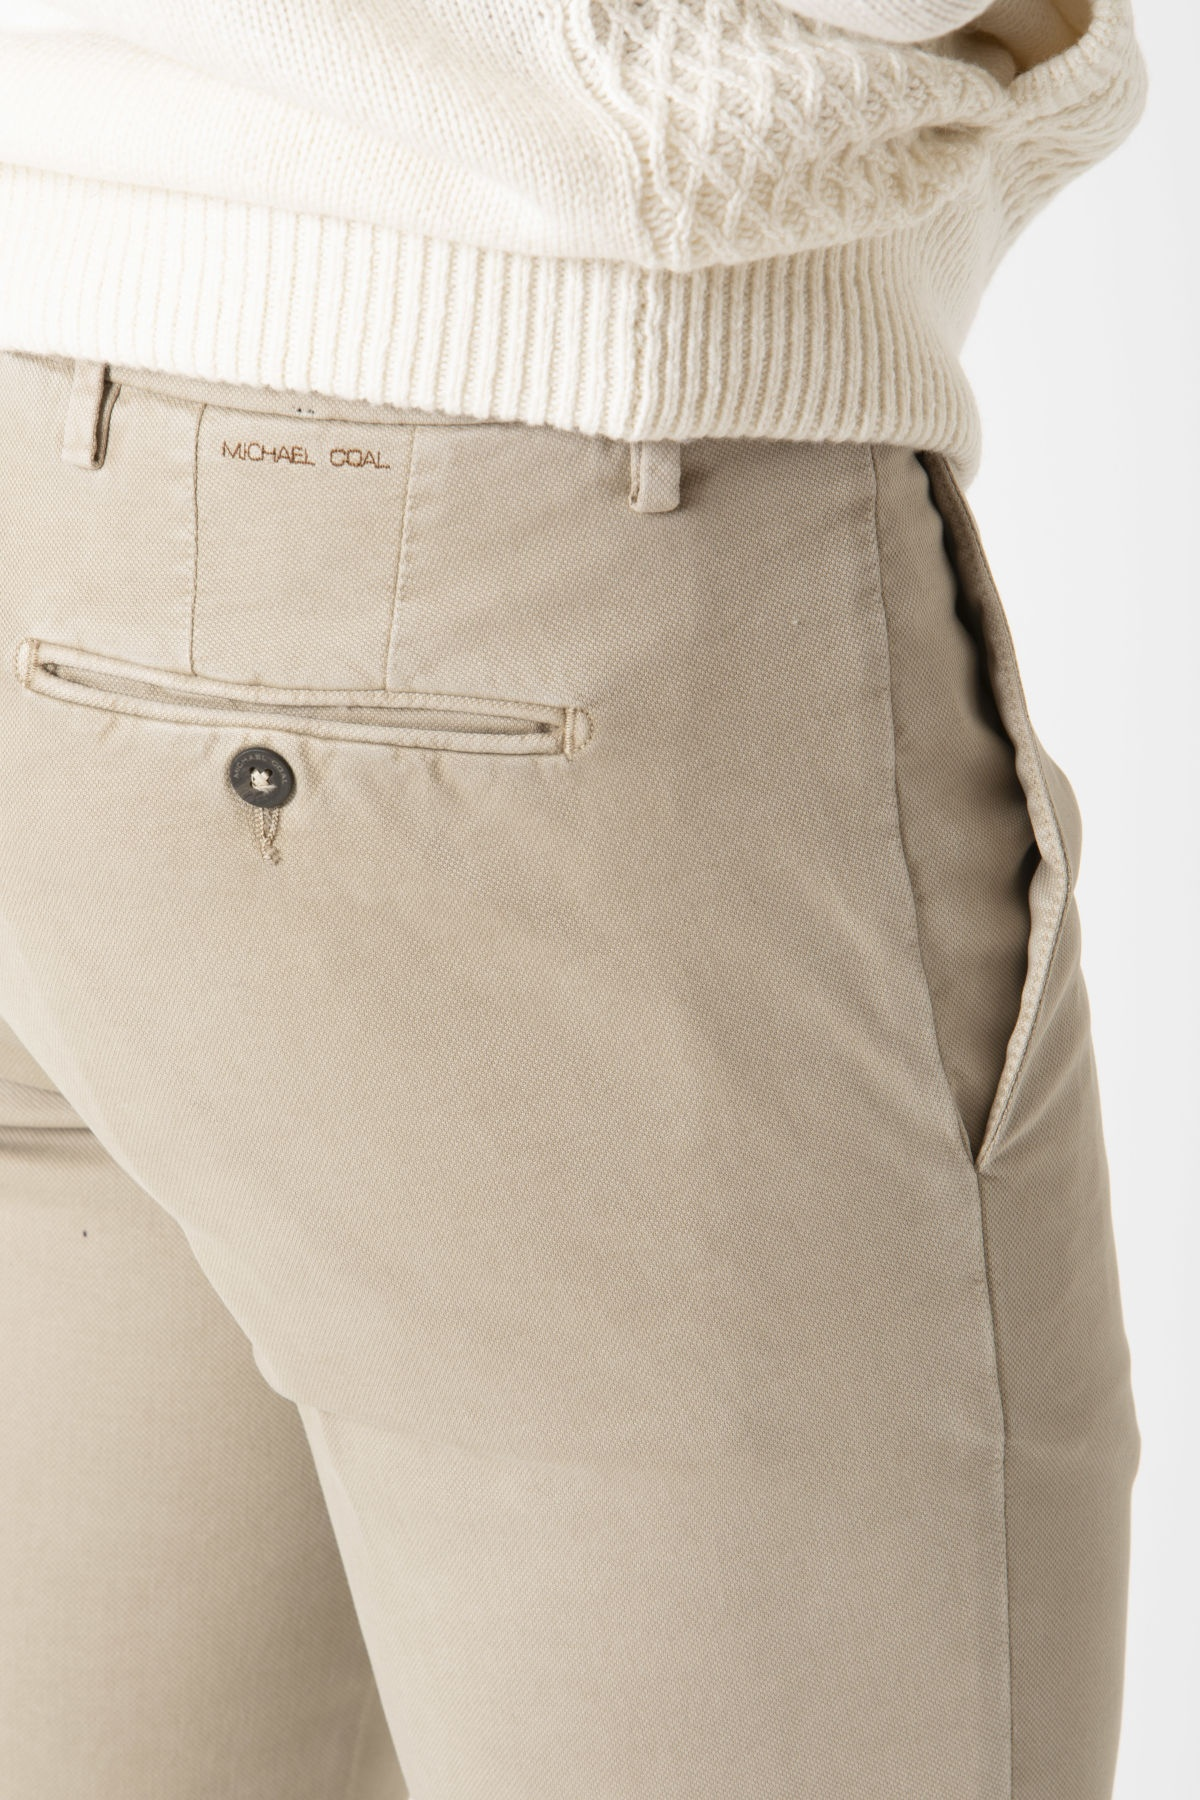 RICKY Trousers for man MICHAEL COAL F/W 19-20